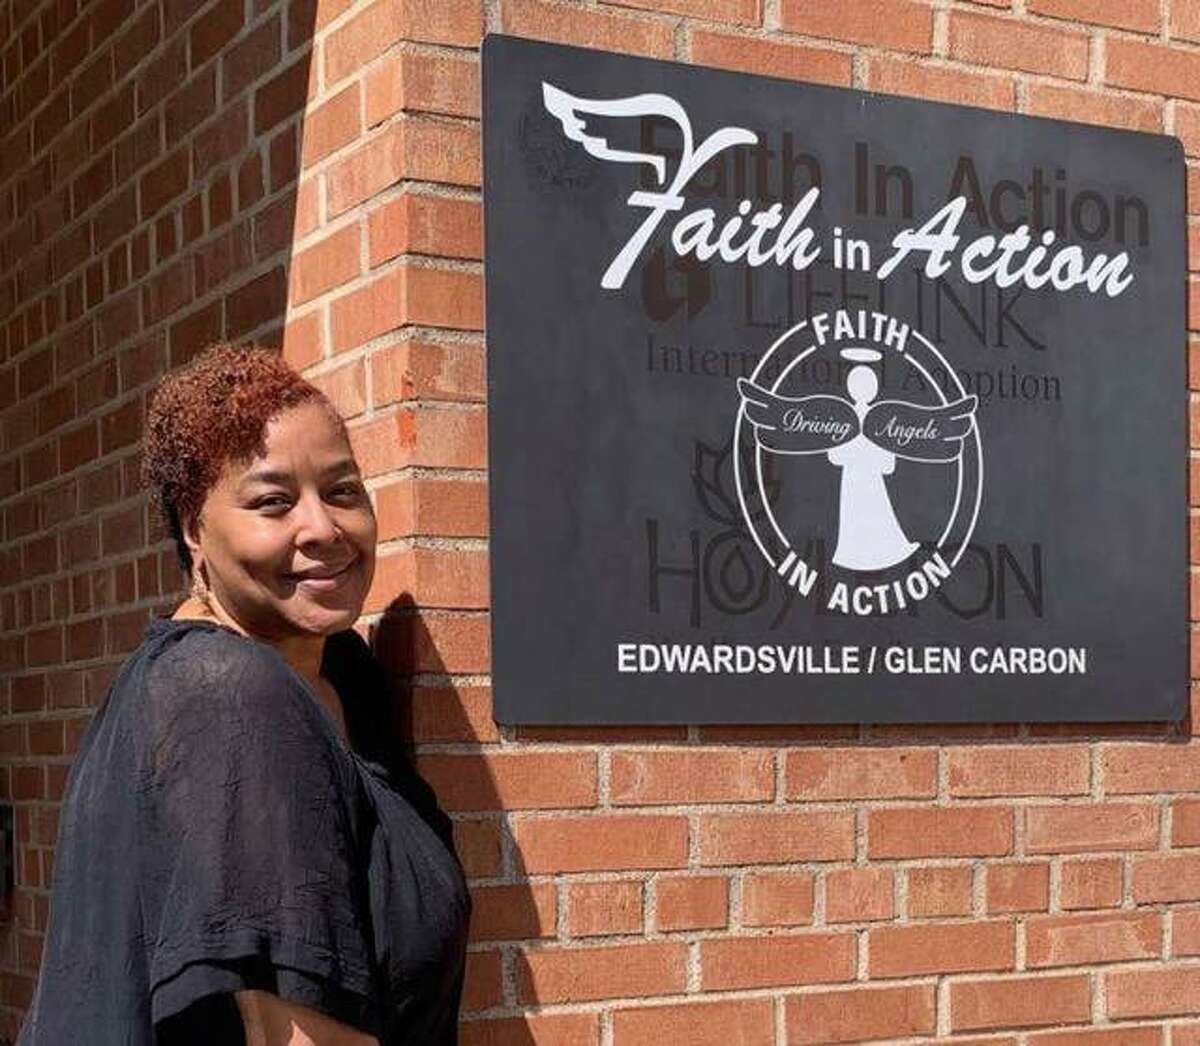 Dee Jackson is the executive director of Faith in Action Edwardsville/Glen Carbon.